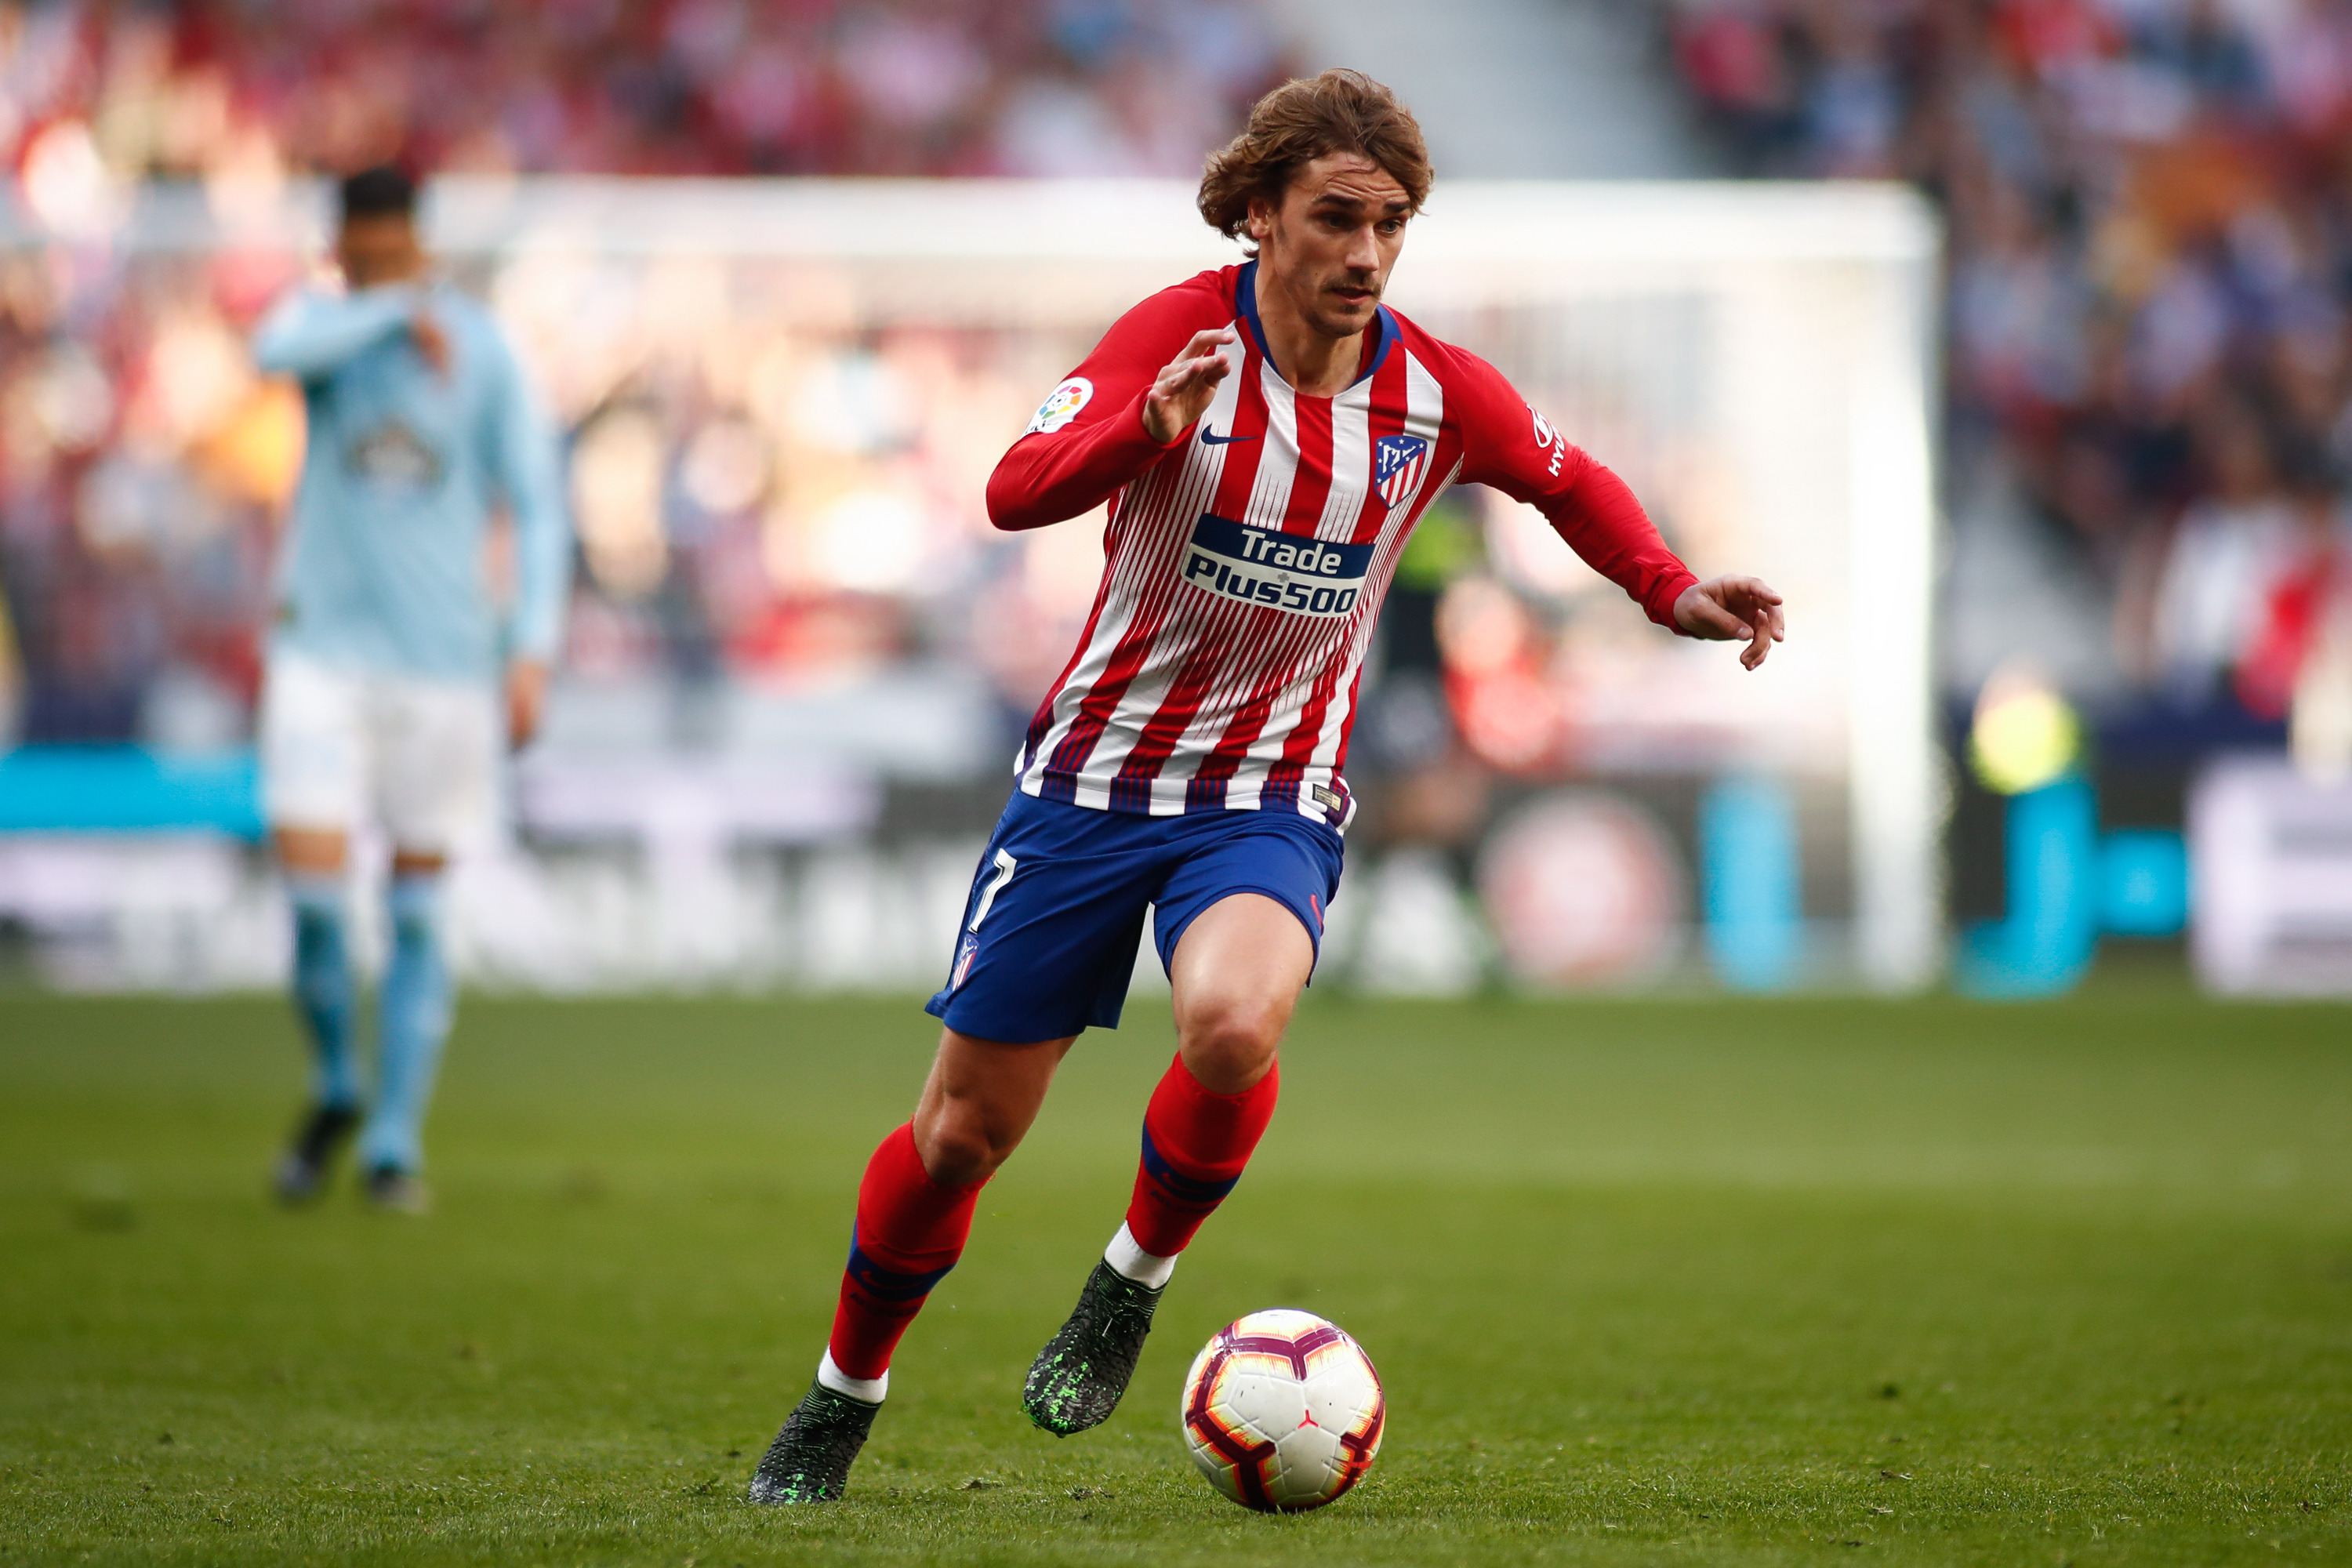 Football - Etranger - Liga : Eibar-Atlético Madrid en direct